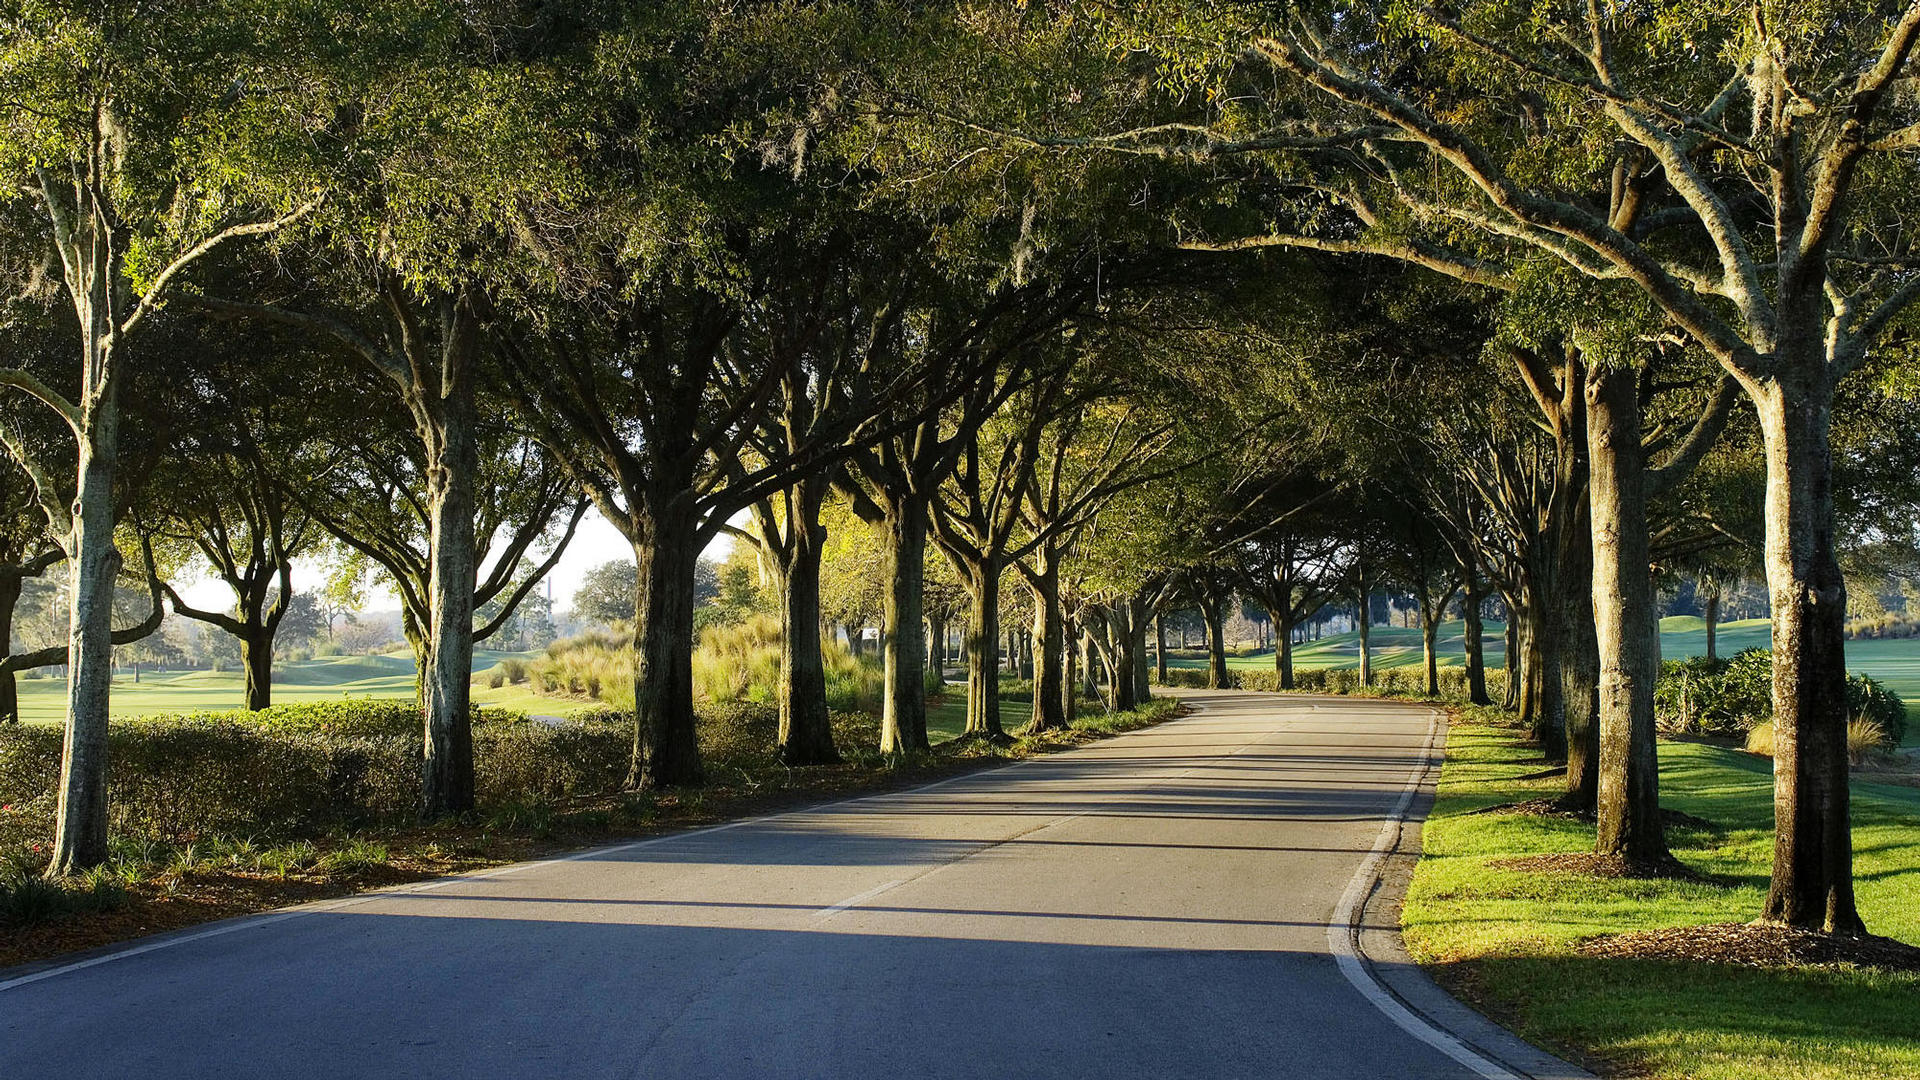 Entrance To The Villas of Grand Cypress Golf Resort in Orlando, Florida